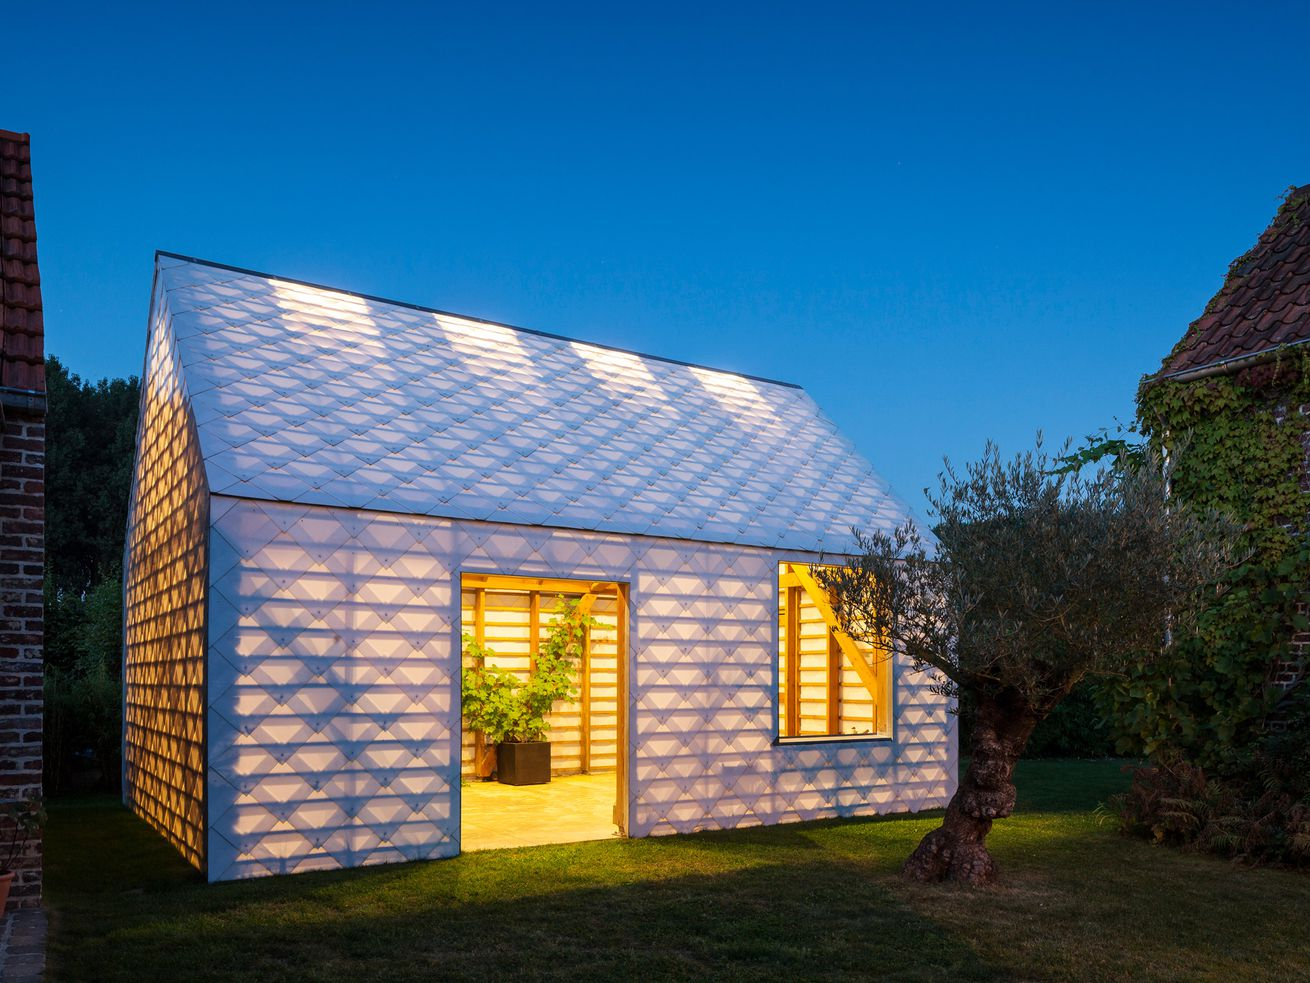 Gabled cabin made of translucent shingles glows at night.